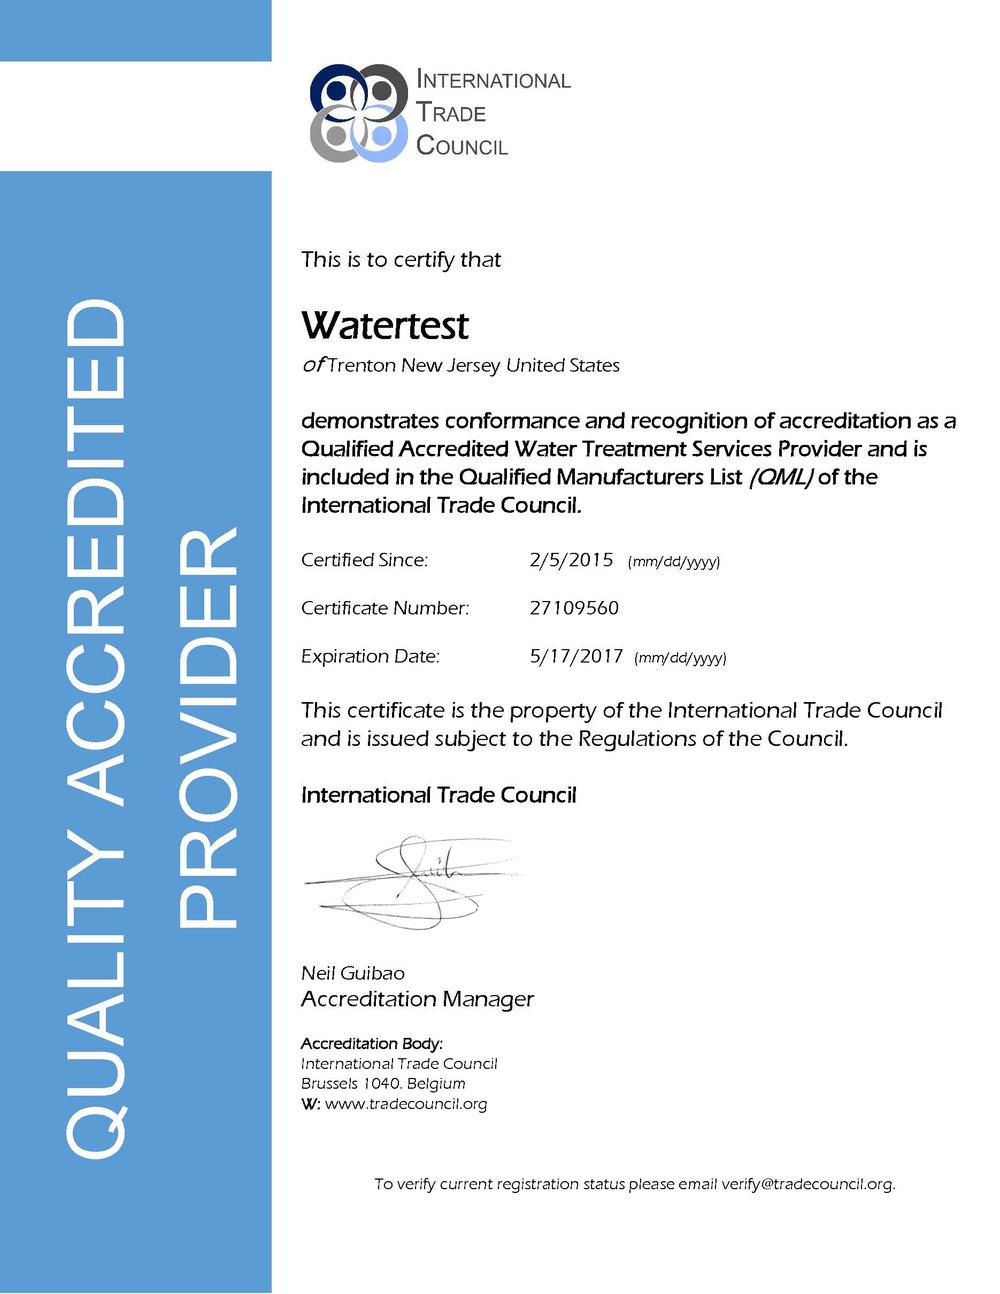 Watertest-Accreditation-Certificate.jpg